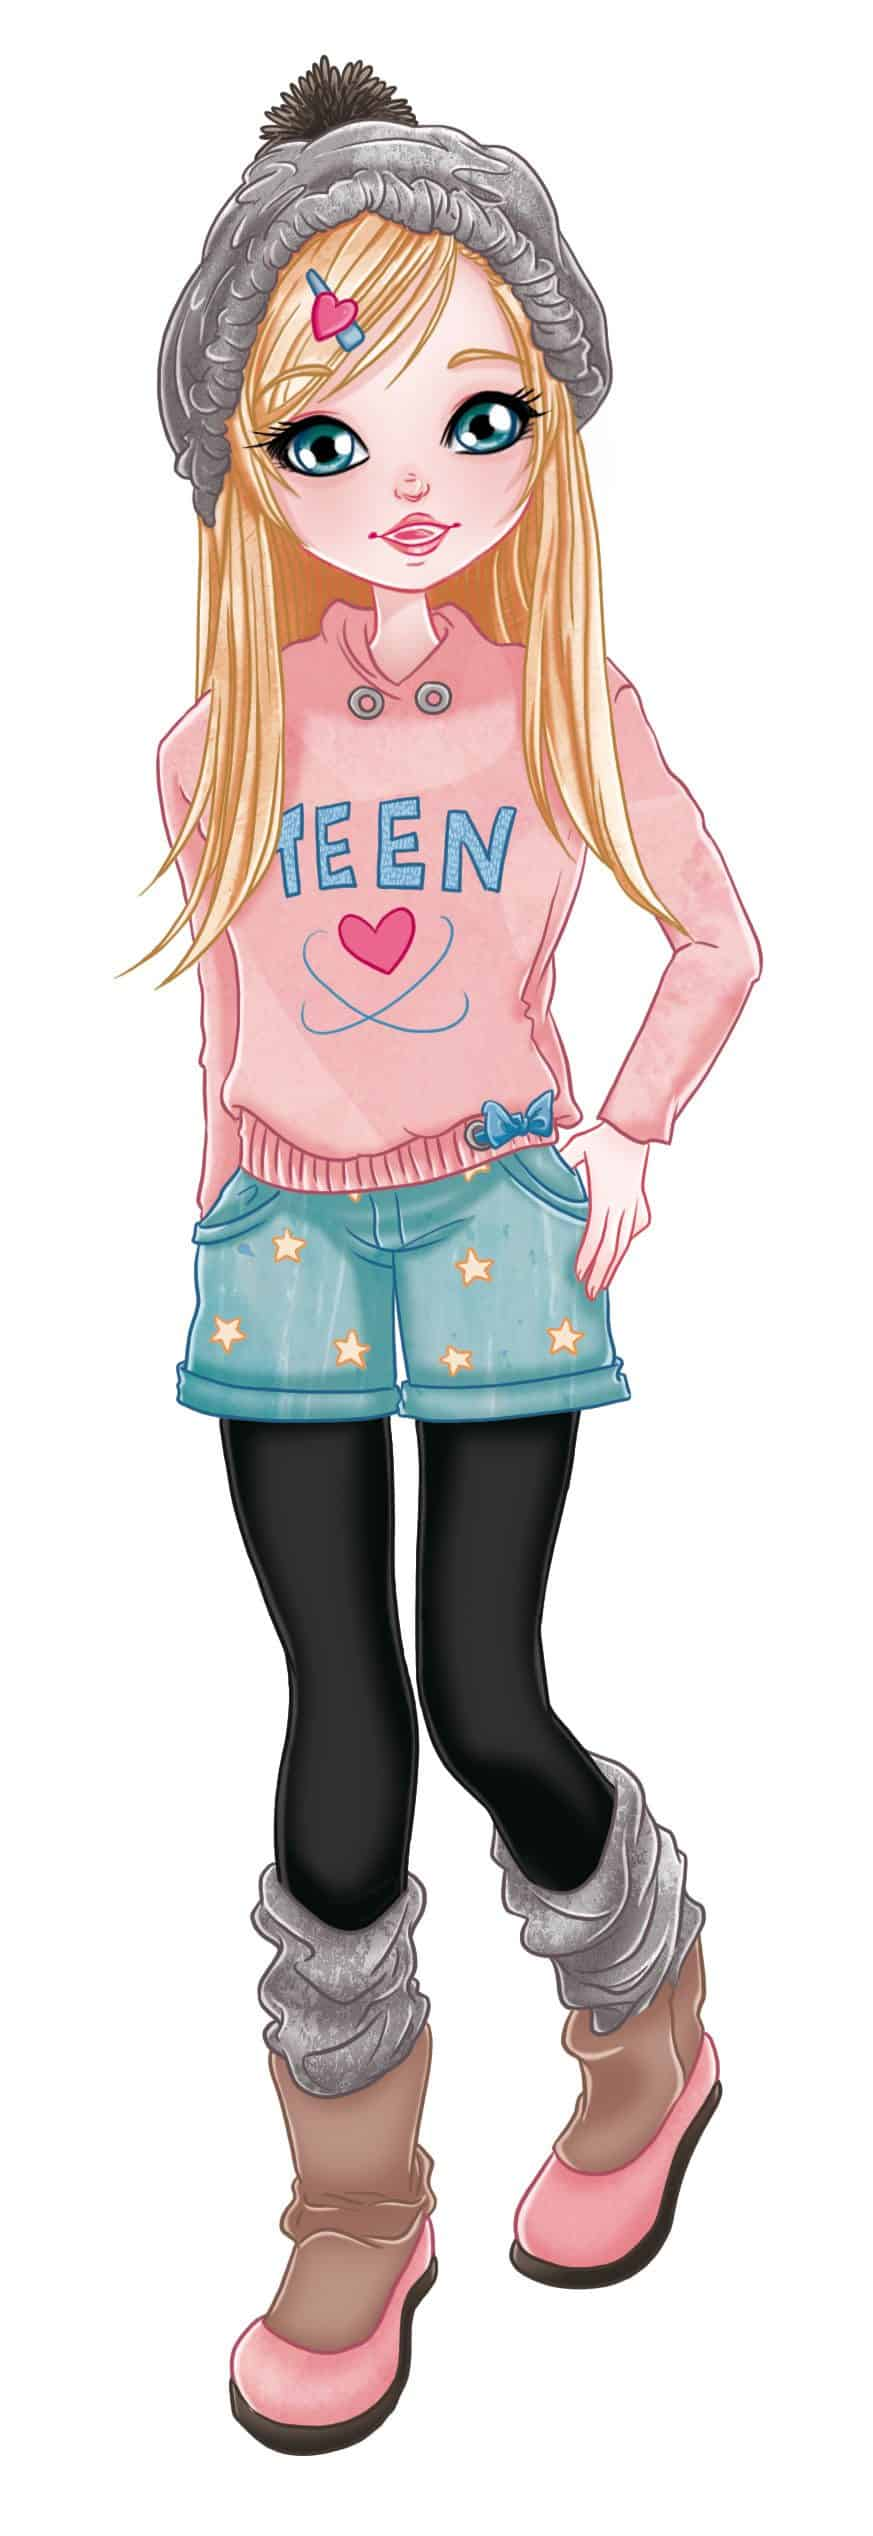 Teen Fashion Illustraiton by Elisa Moriconi